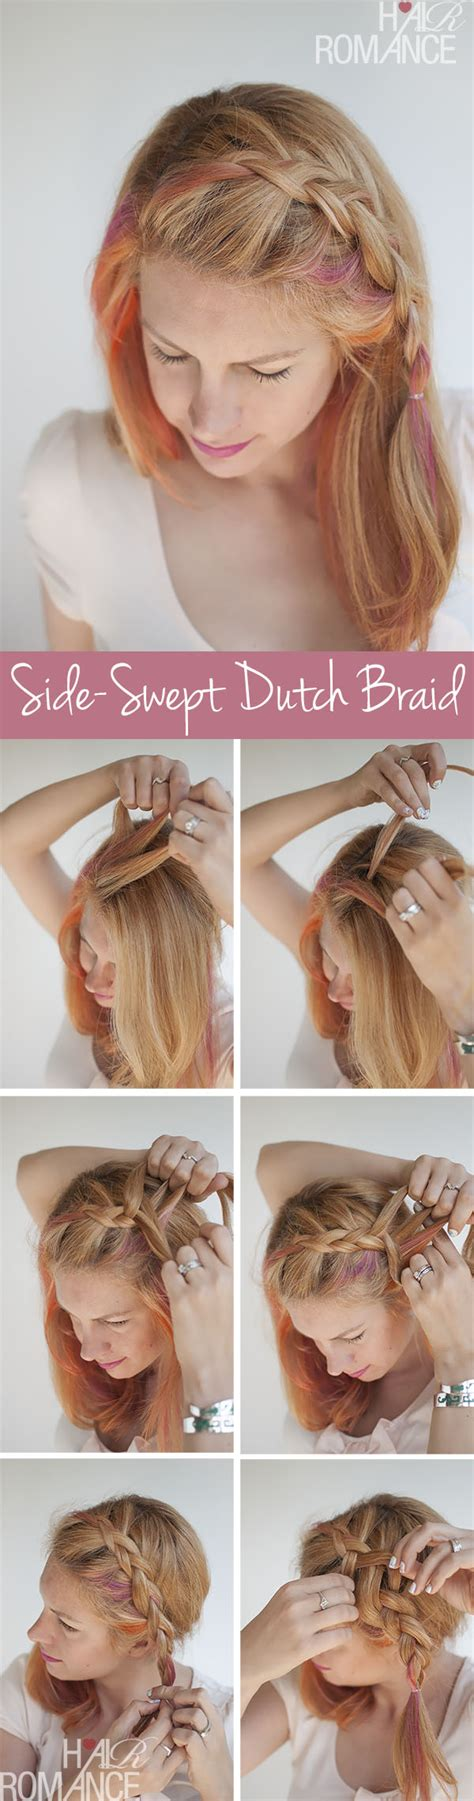 How To Do Side Swept Hairstyles by Hairstyle Tutorial How To Do Side Swept Braid